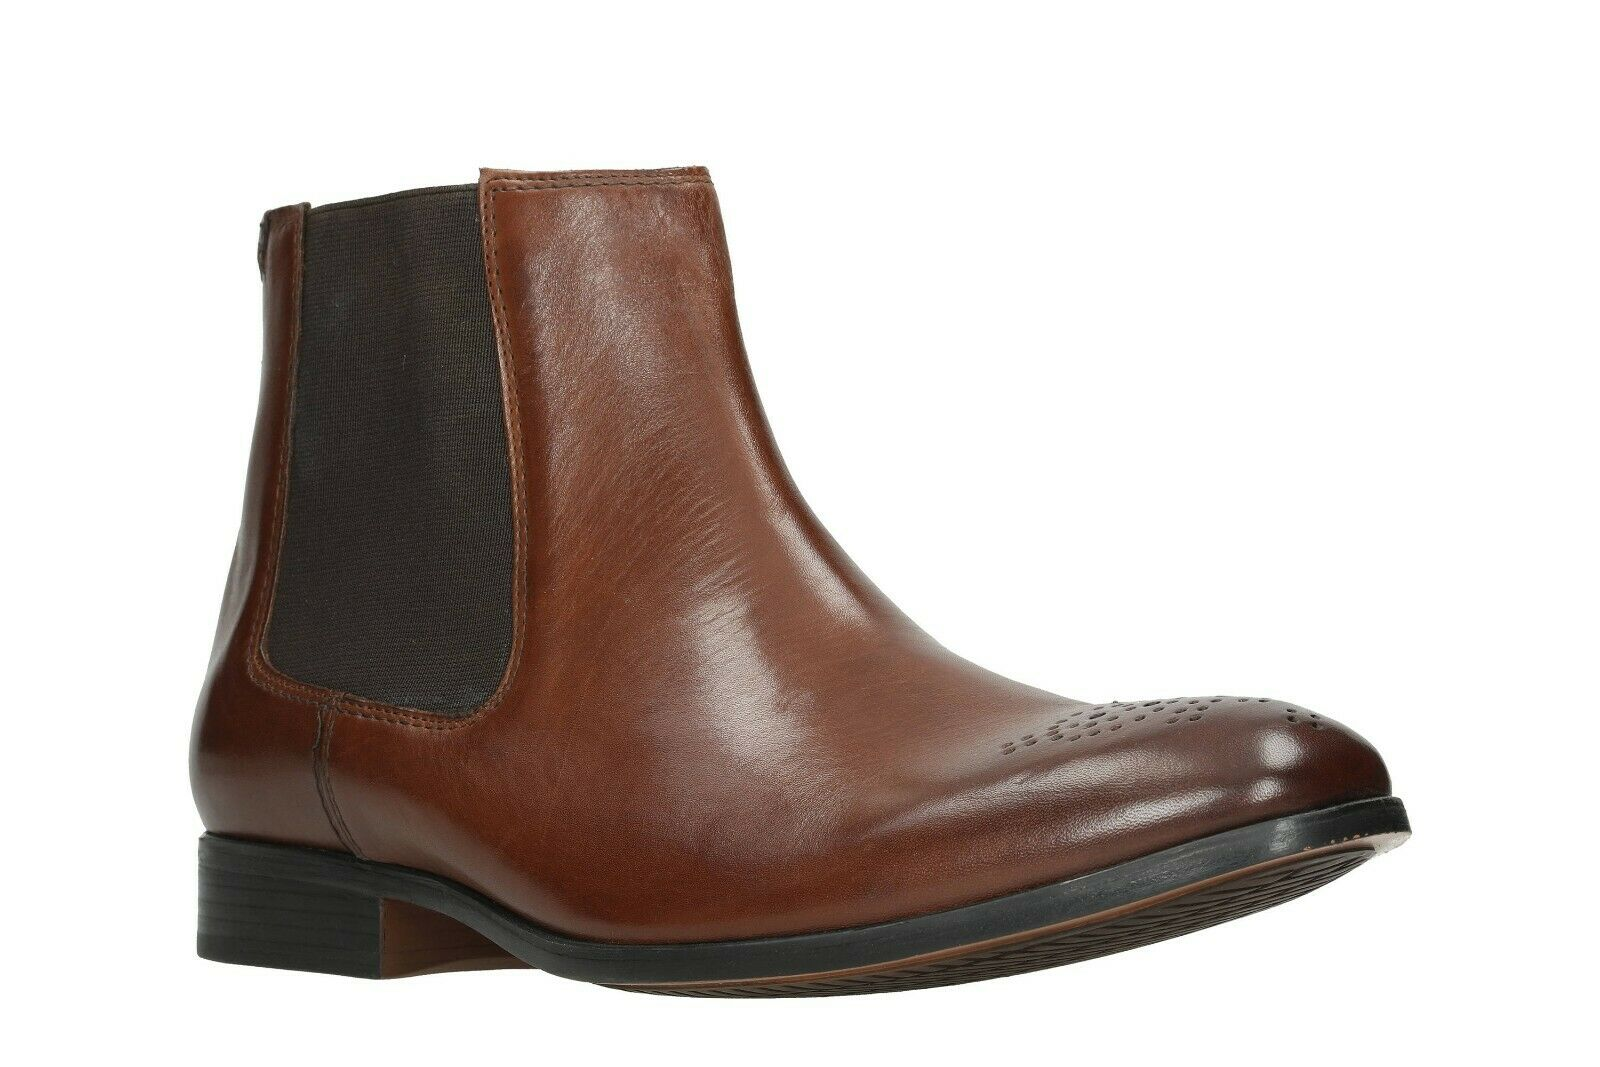 Clarks Men's Gilmore Chelsea Tan Leather Pull On Ankle Boots UK SIZE 10 G